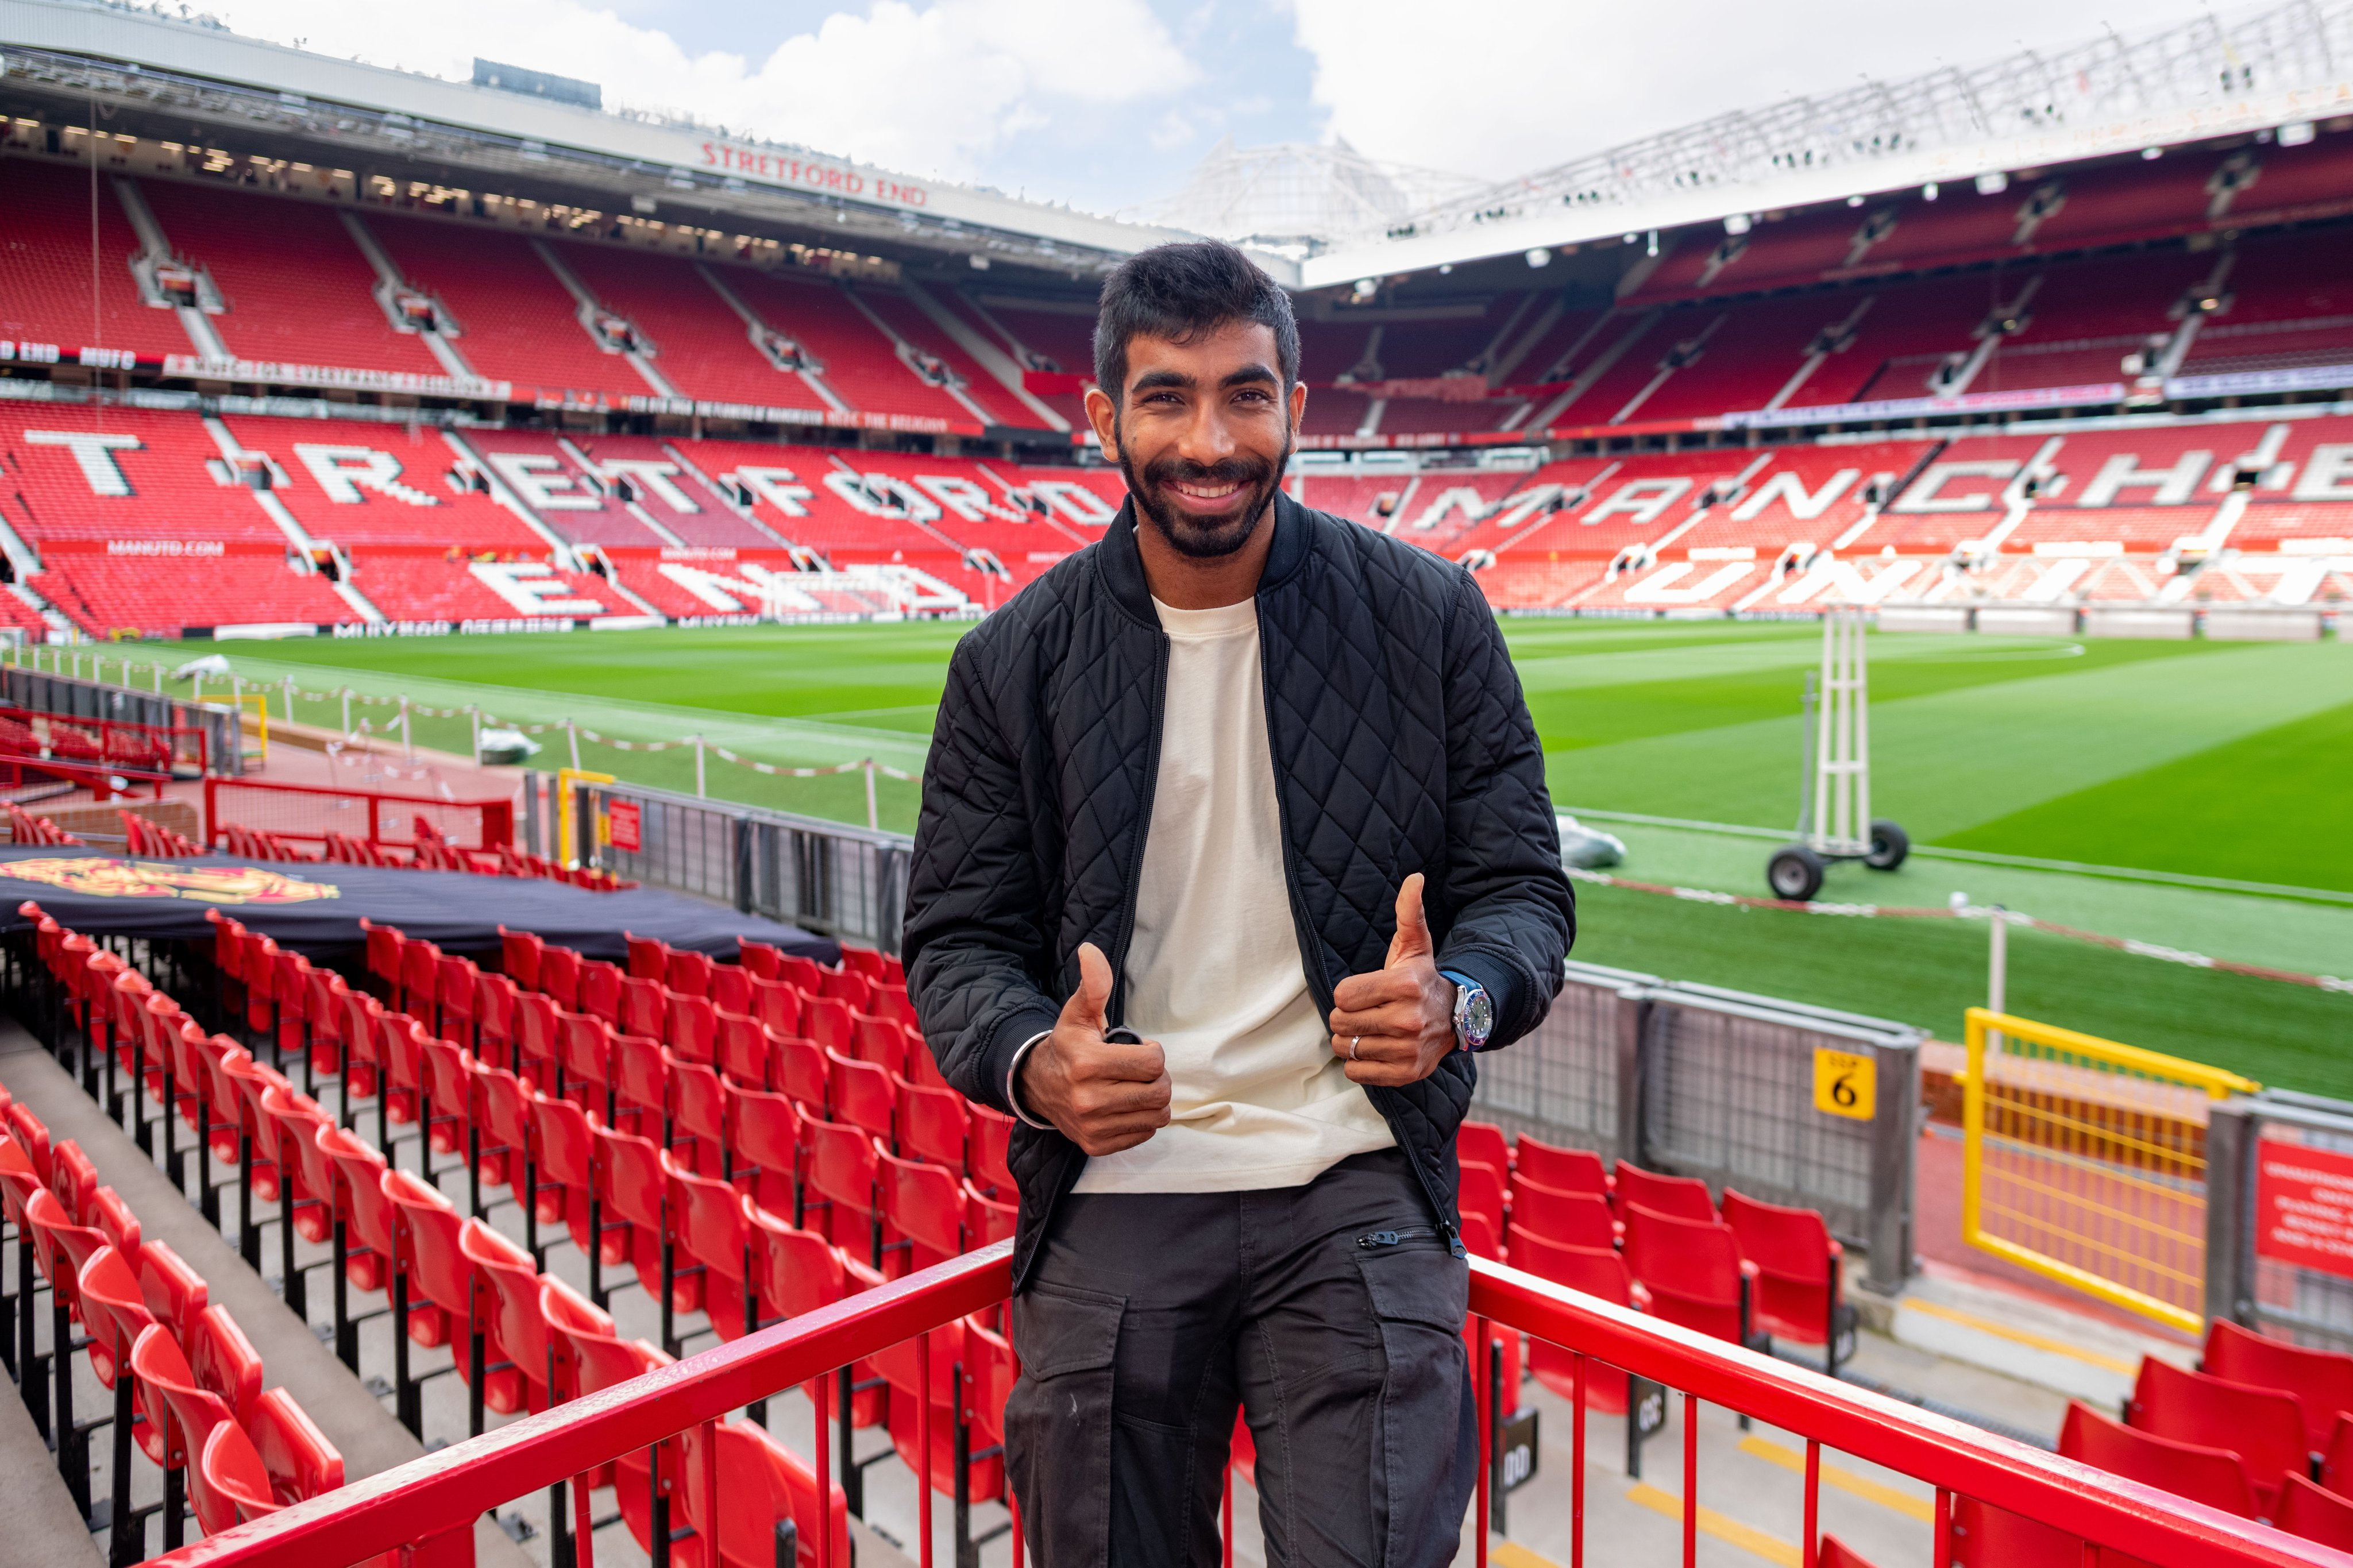 Jasprit Bumrah in Manchester United's home ground in Old Trafford | Twitter